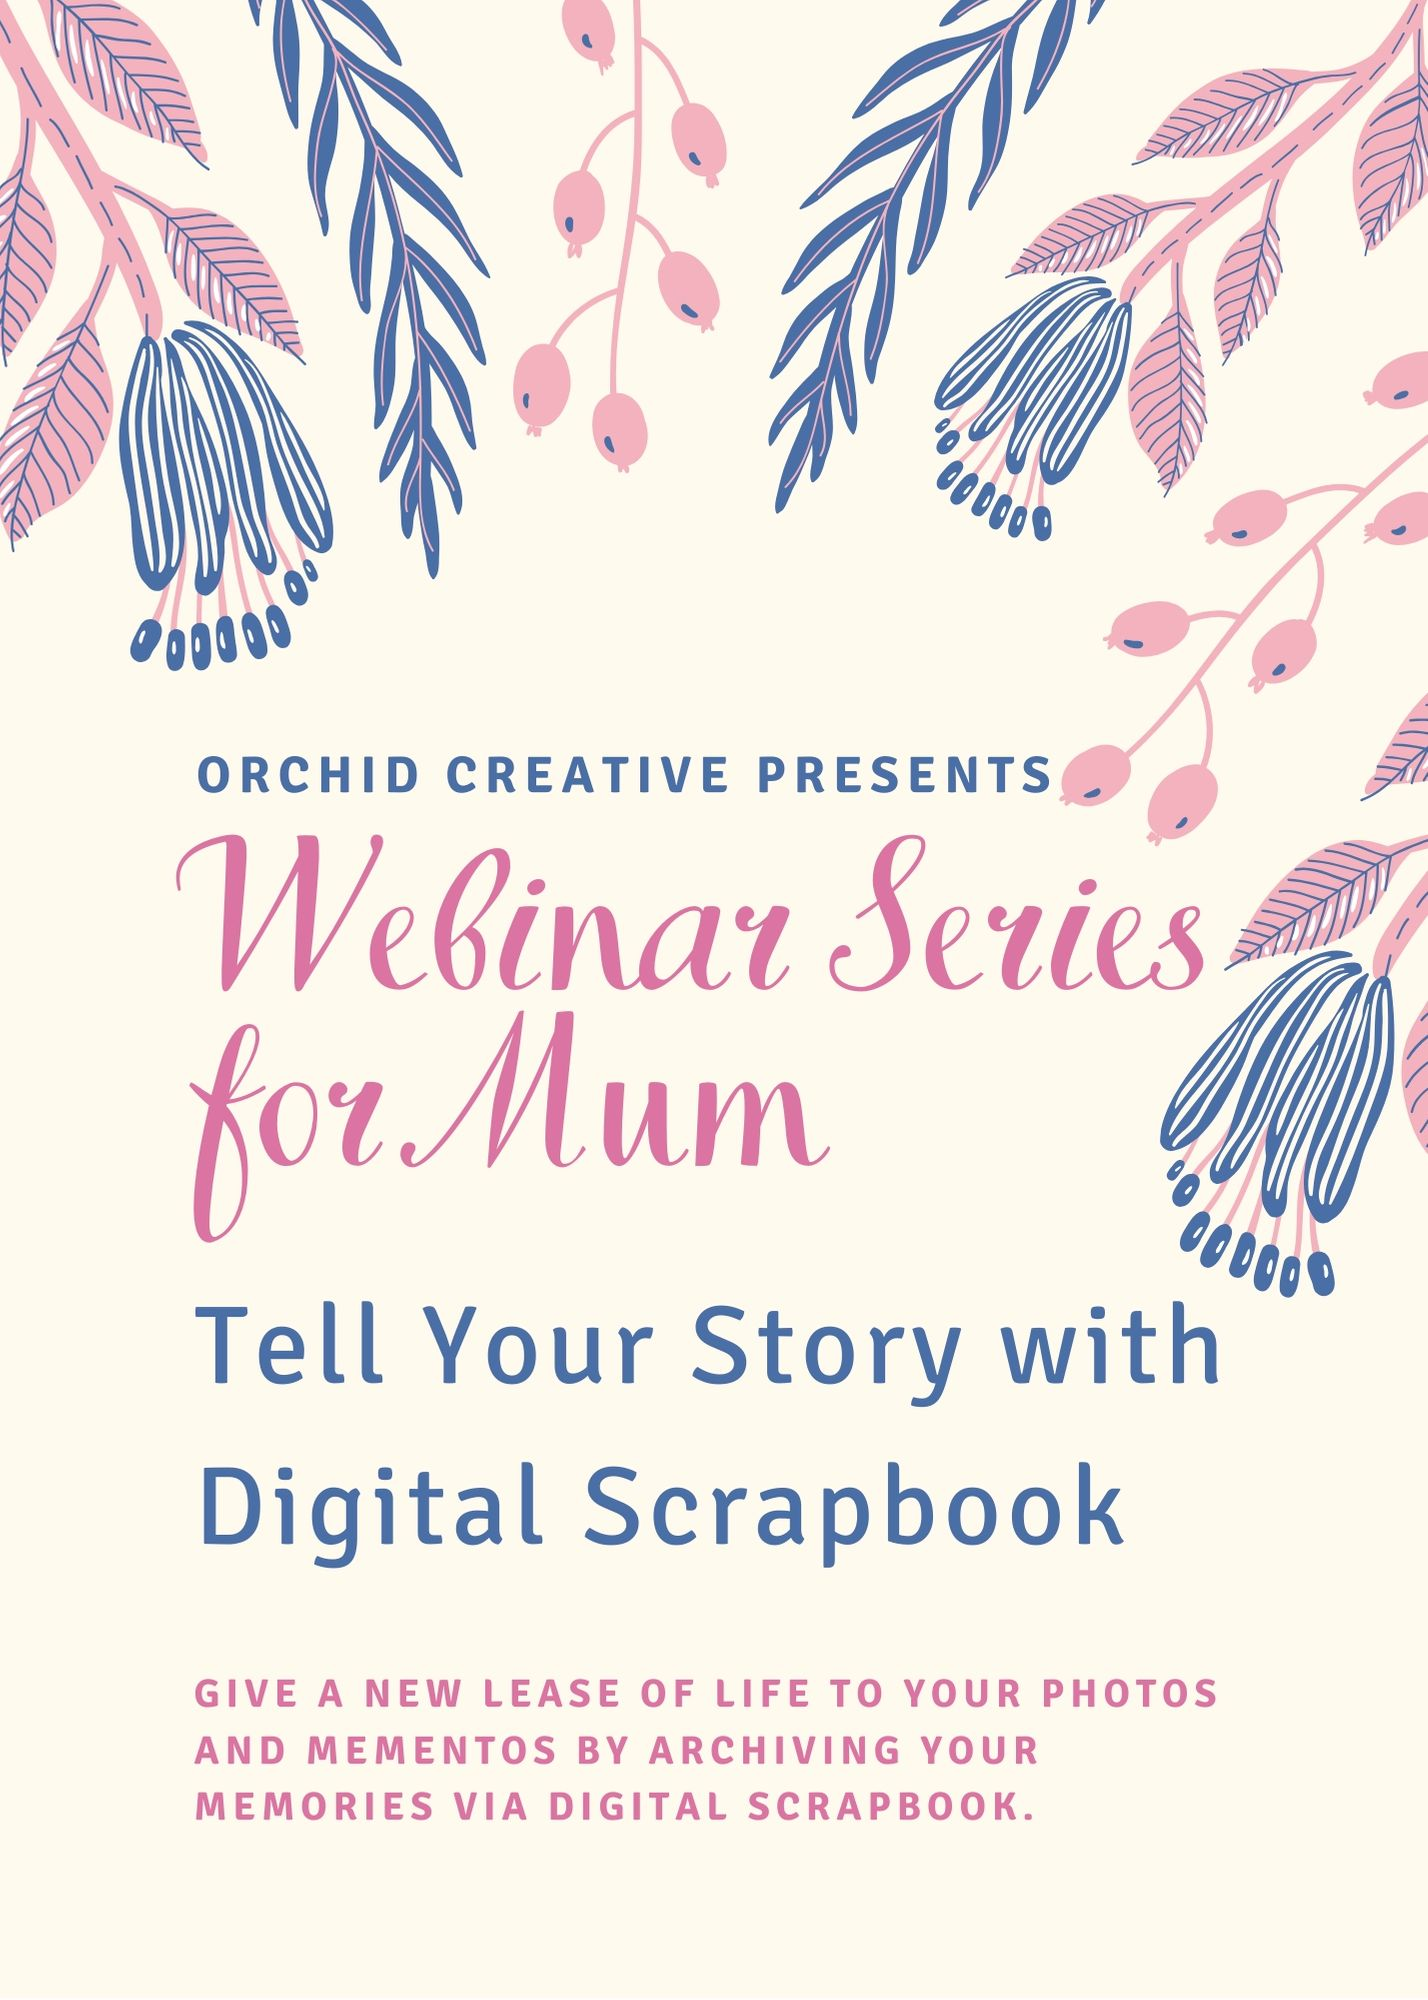 Webinar Series for Mum Page 1